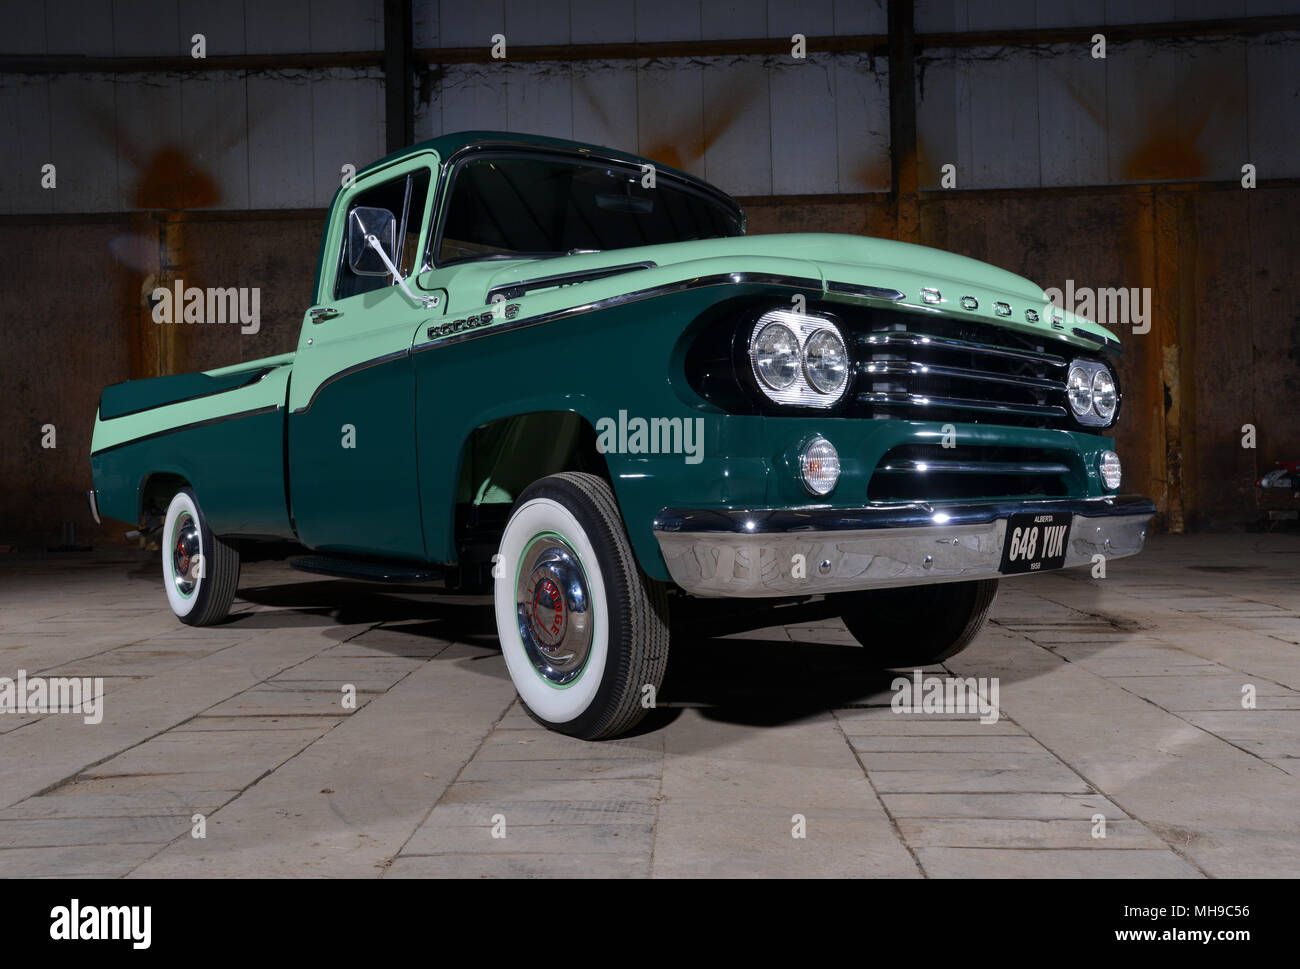 1950s Dodge Stock Photos Images Alamy 1949 D100 Truck 1958 Sweptside Classic American Pickup Image